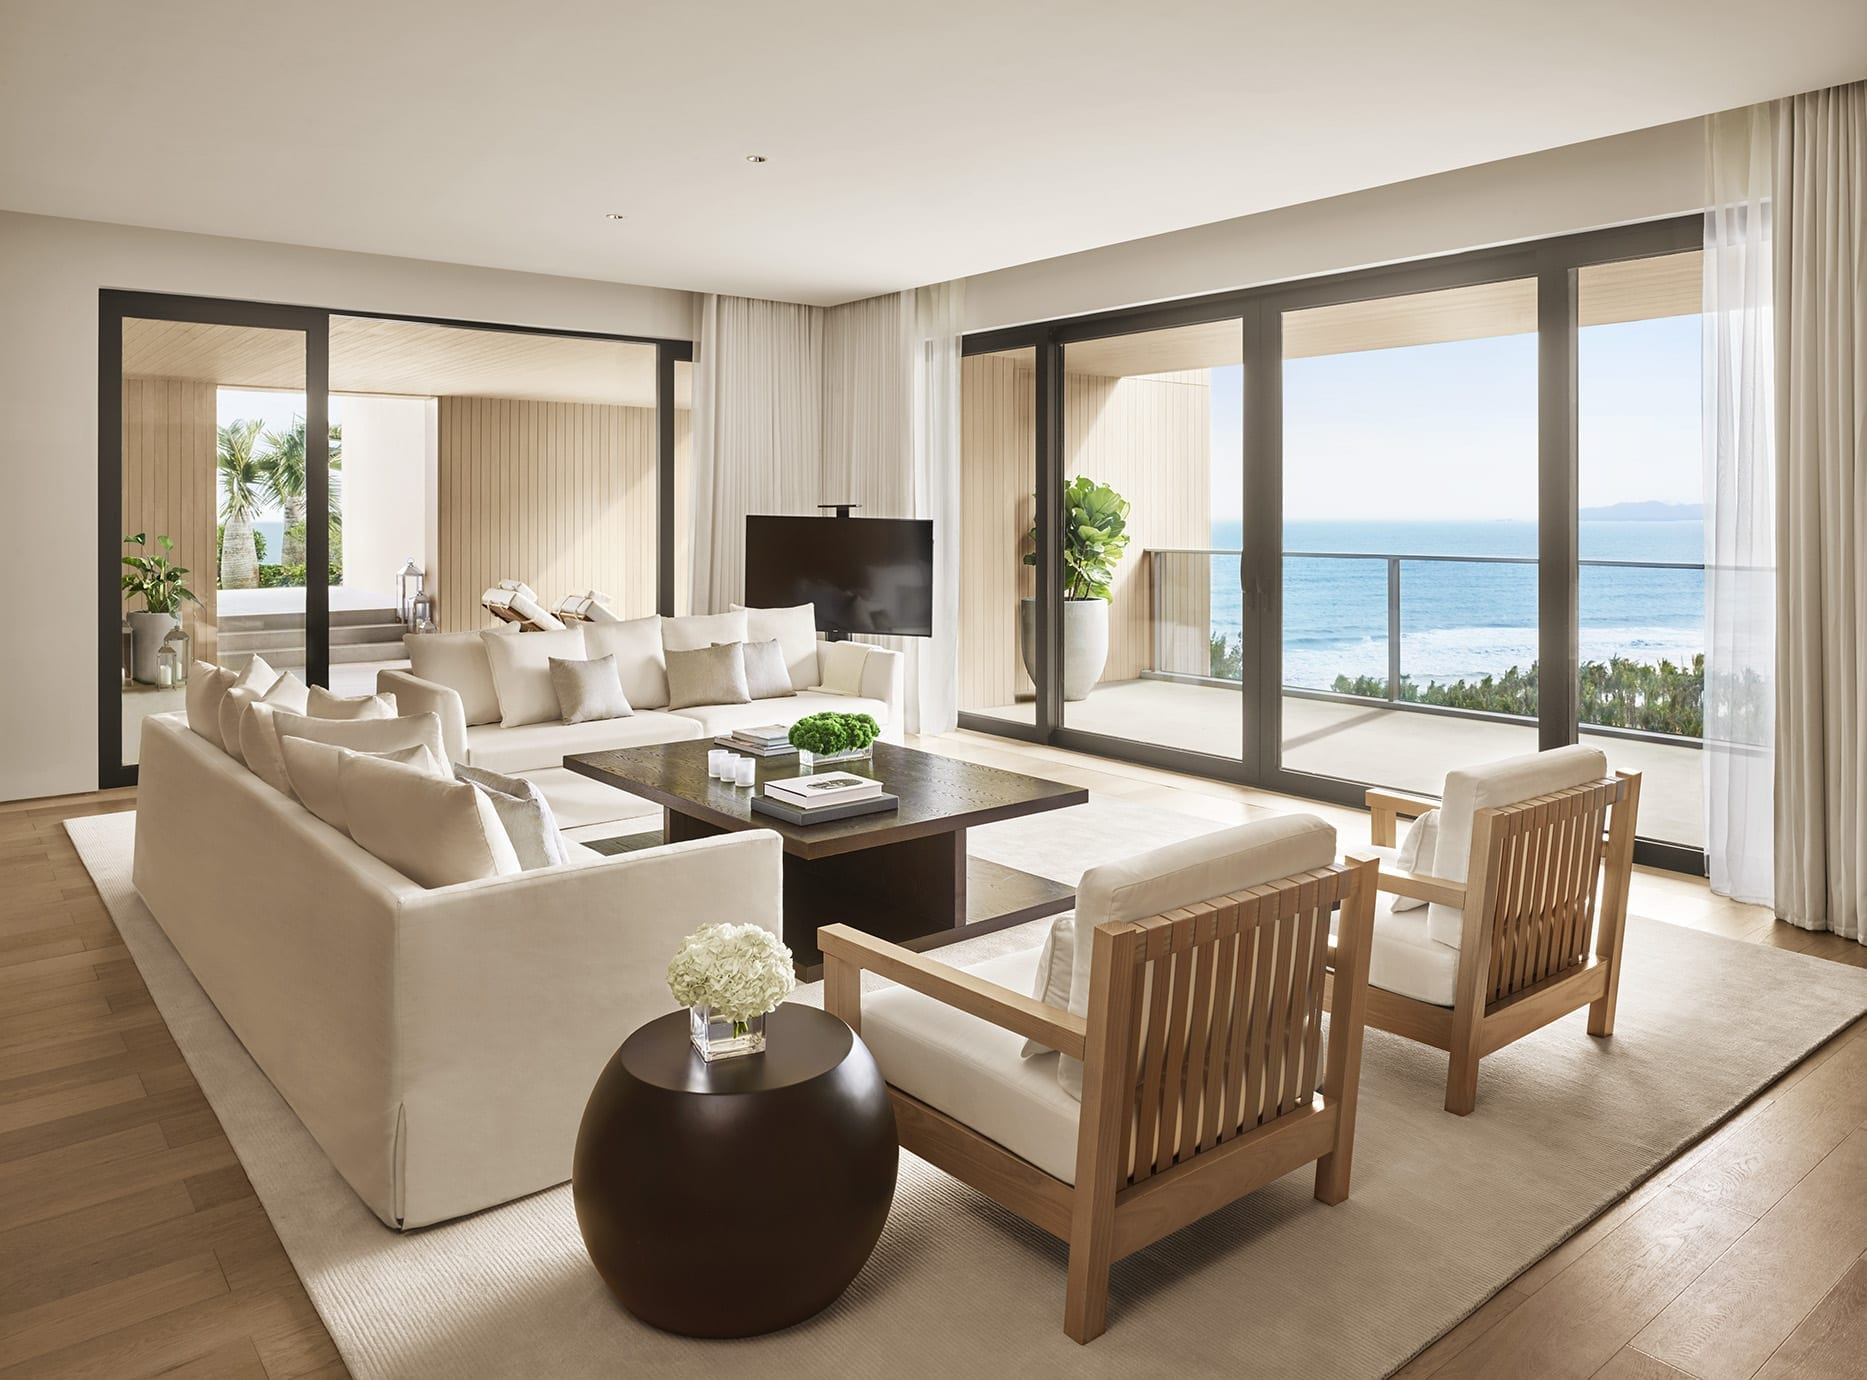 Penthouse Suite Living Room at The Sanya EDITION